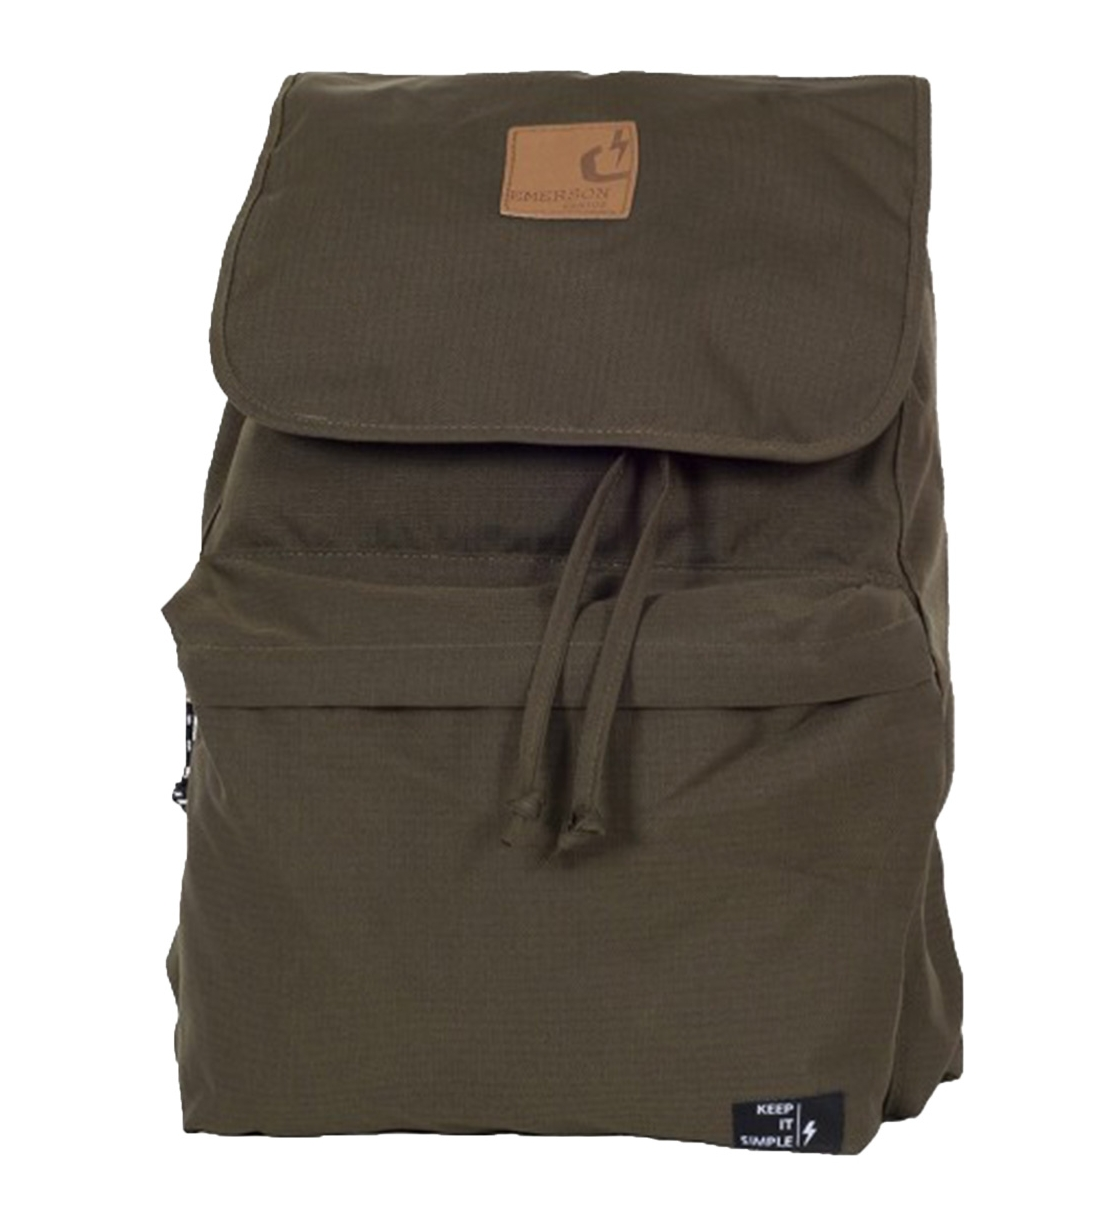 Emerson Σακίδιο Πλάτης Backpack BE0008